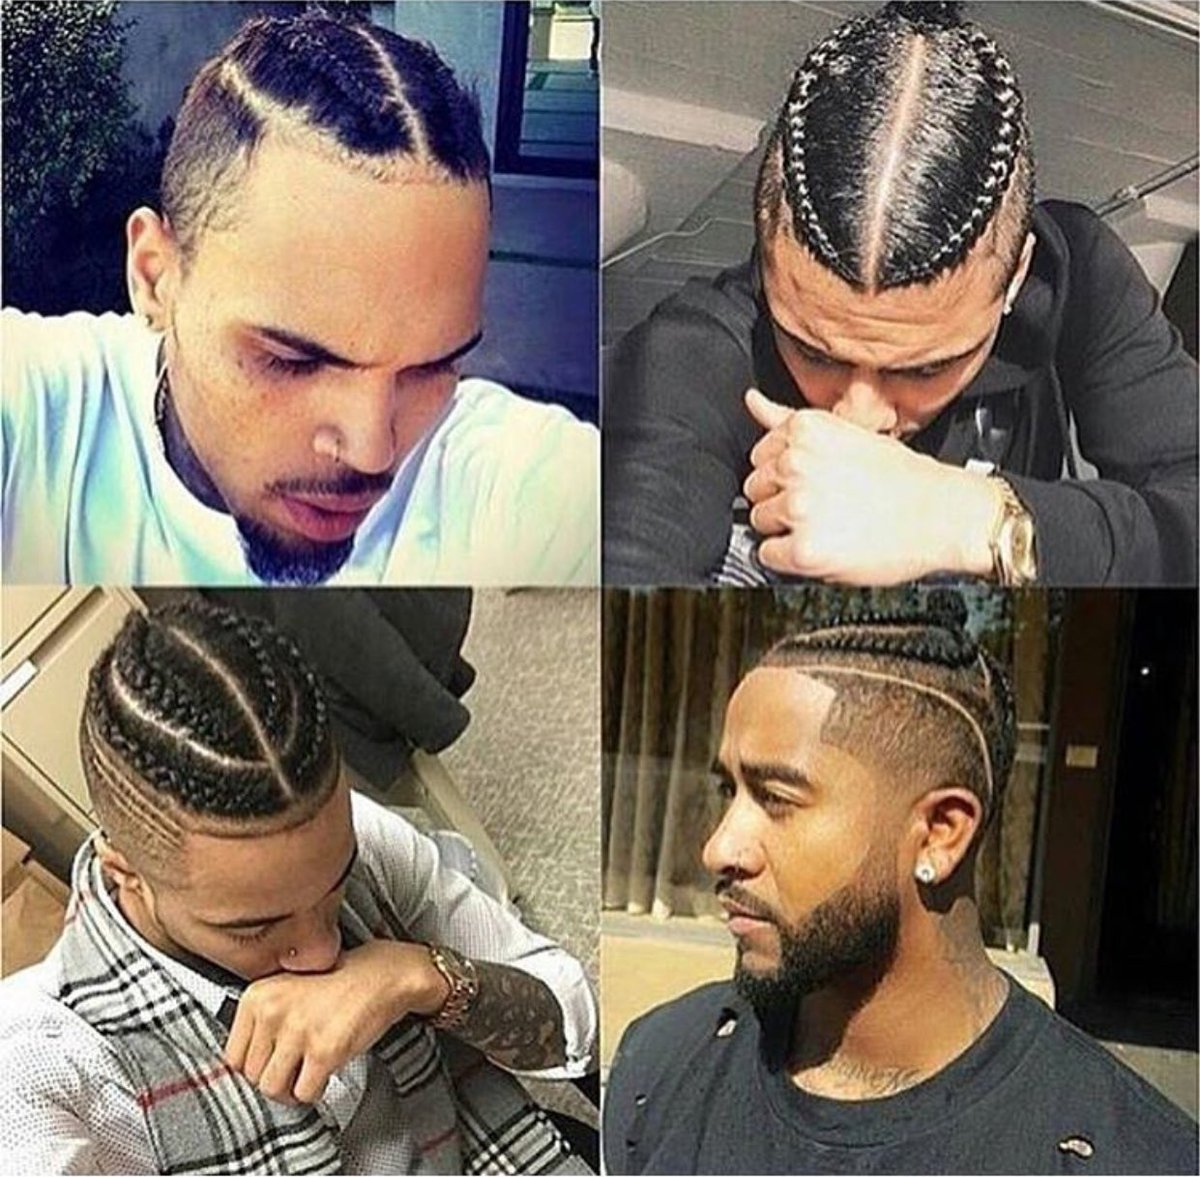 What Do You Y All Think About Cornrows Braids On Men